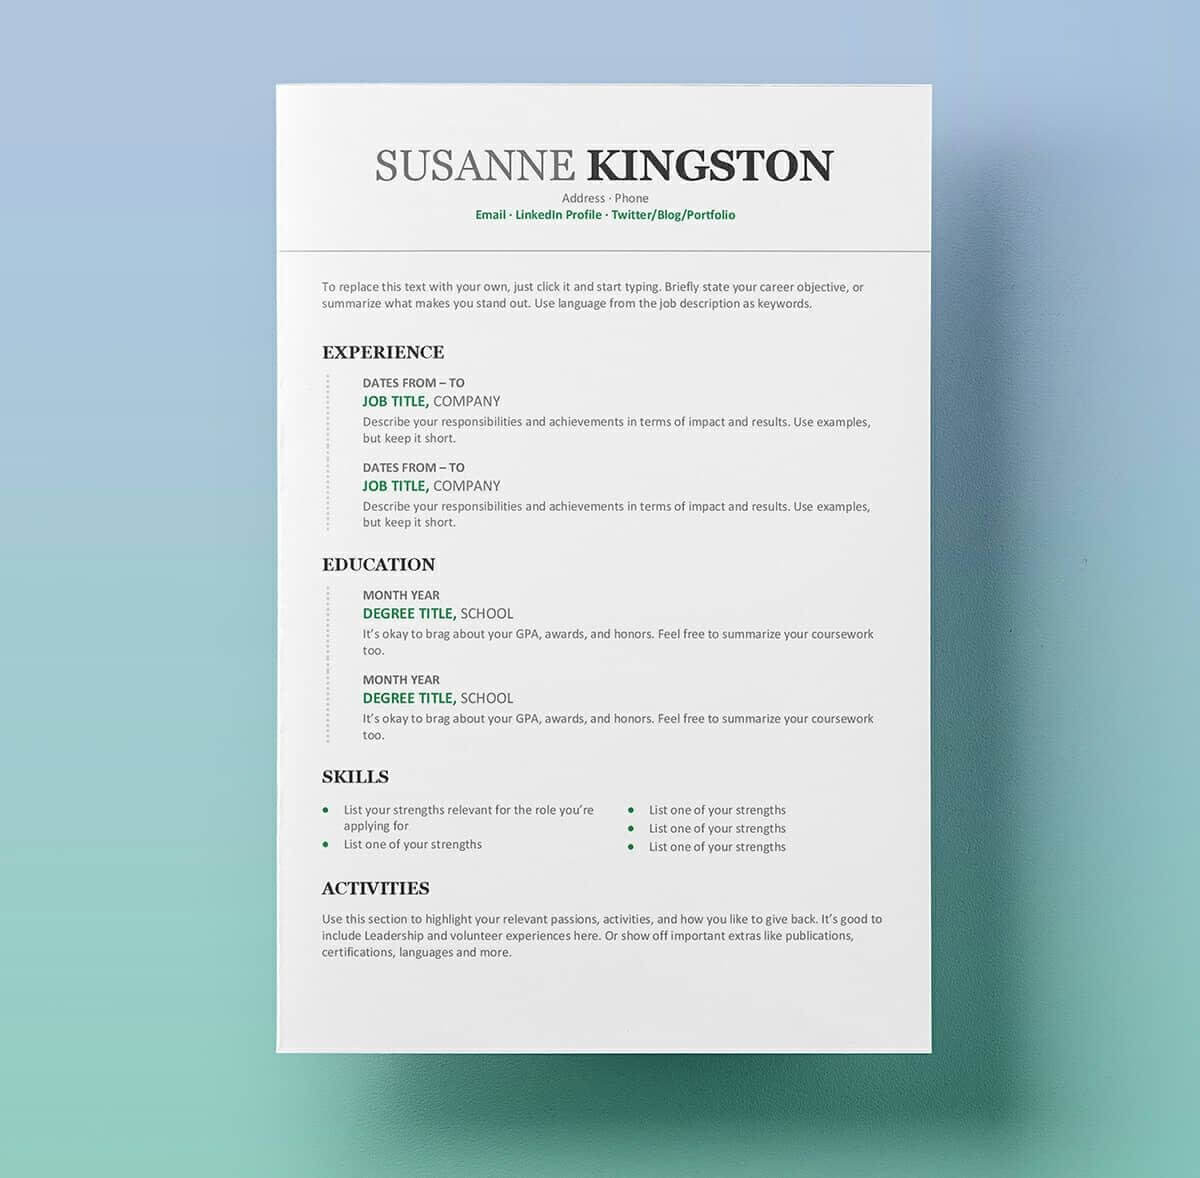 25 Resume Templates For Microsoft Word [Free Download] Intended For How To Get A Resume Template On Word